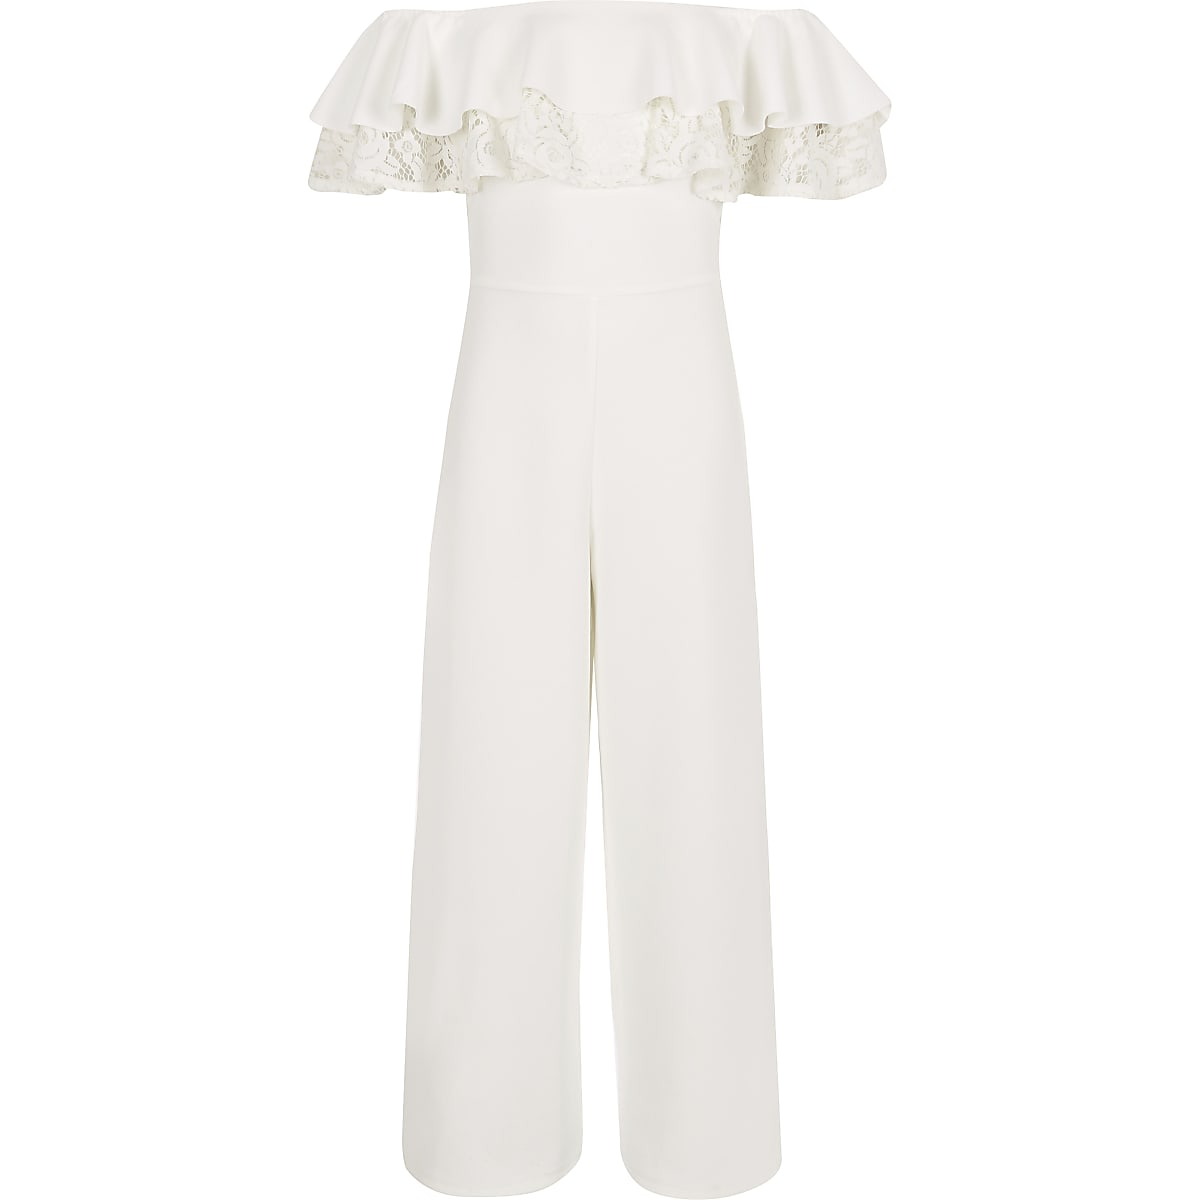 Girls white bardot lace trim jumpsuit